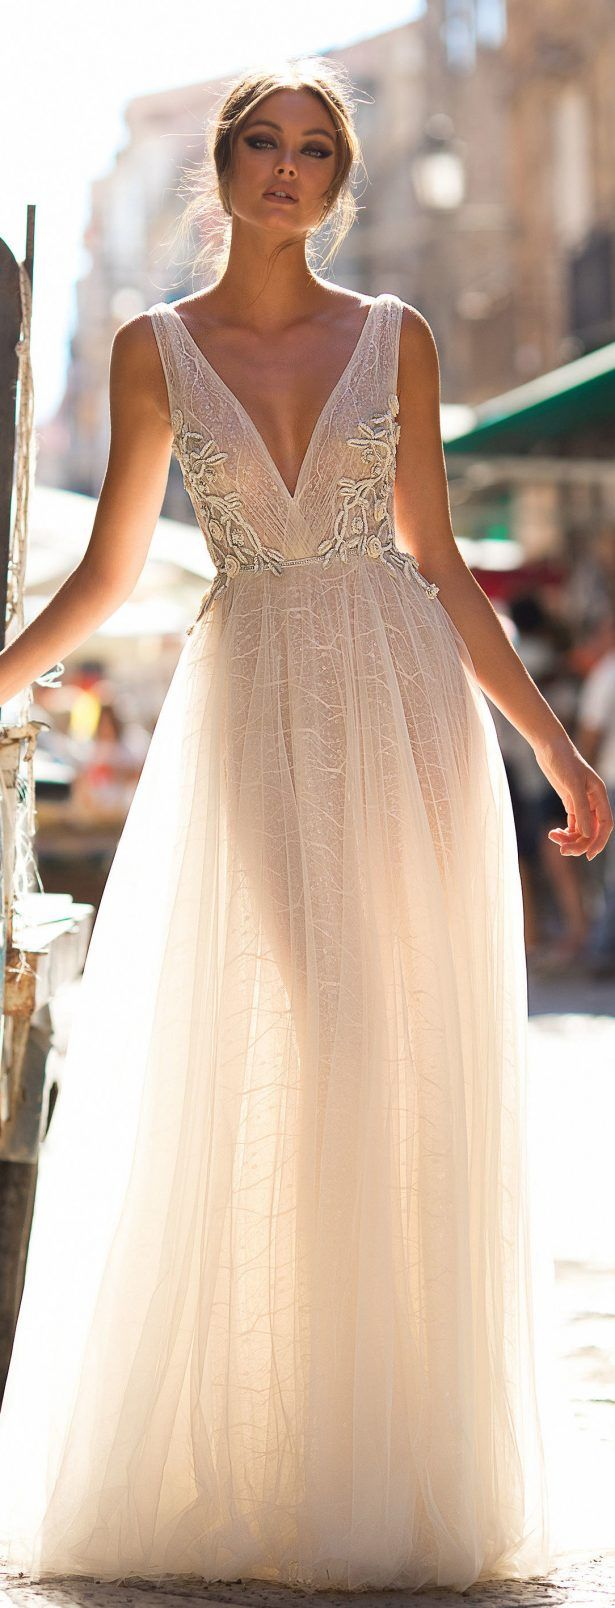 How much are berta wedding dresses  MUSE by Berta  Sicily Wedding Dress Collection  Dress collection